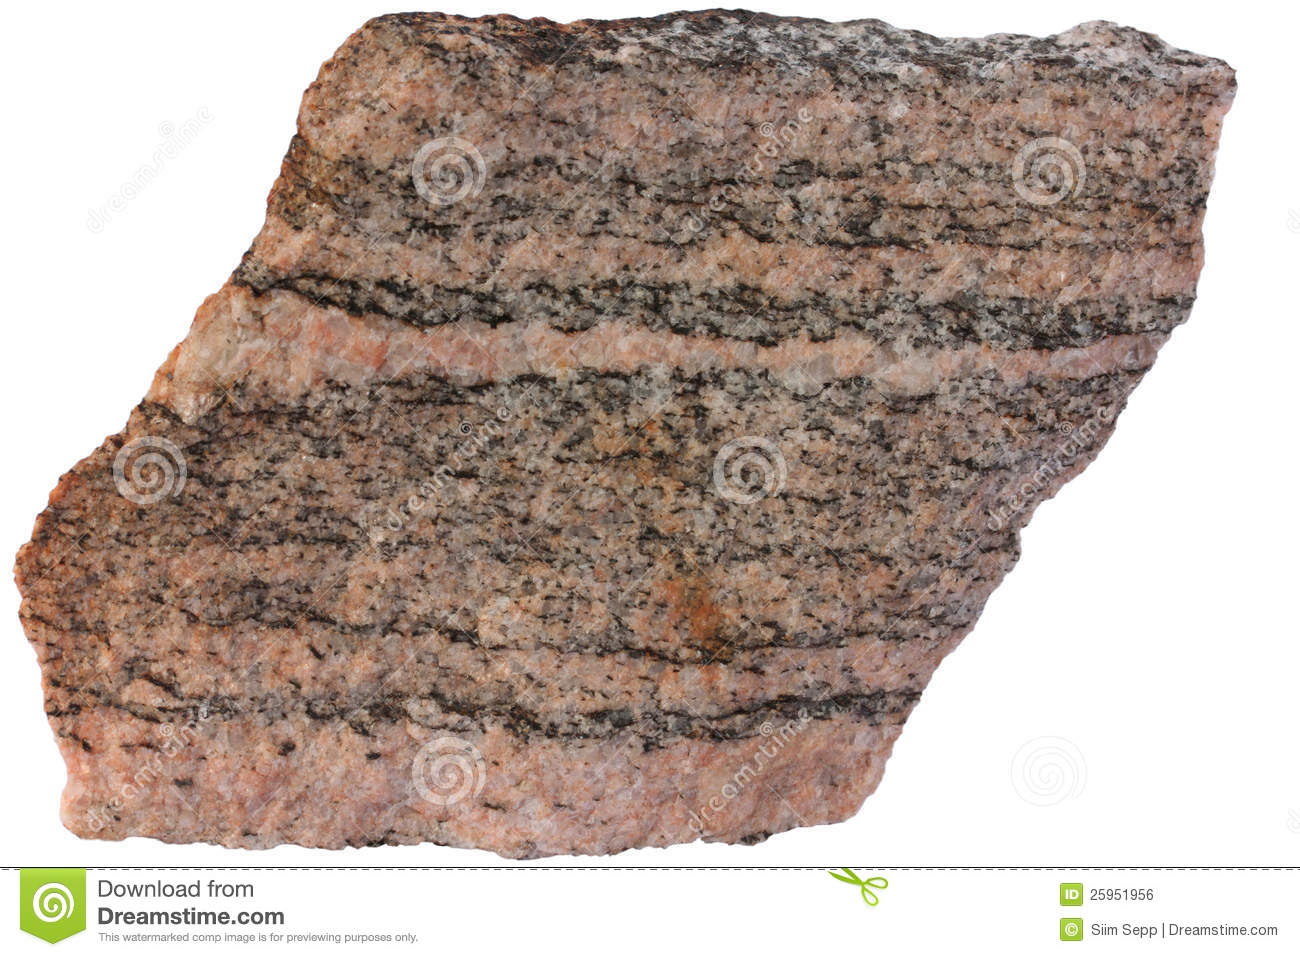 Banded Metamorphic Rock Gneiss From Karelia Royalty Free Stock.